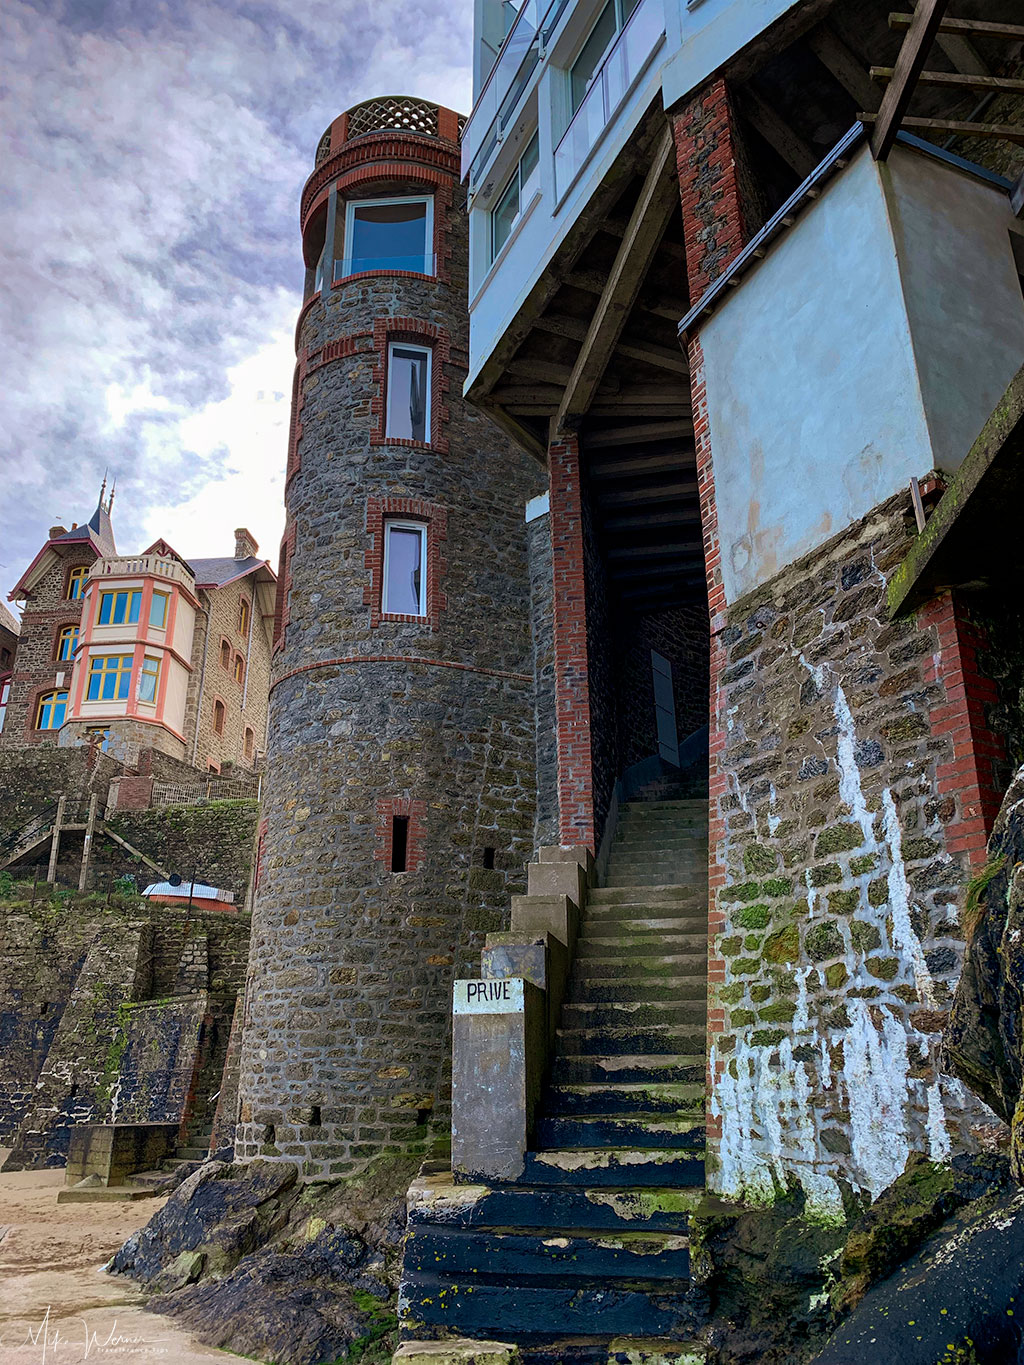 A tower from one of the seaside villas in Dinard